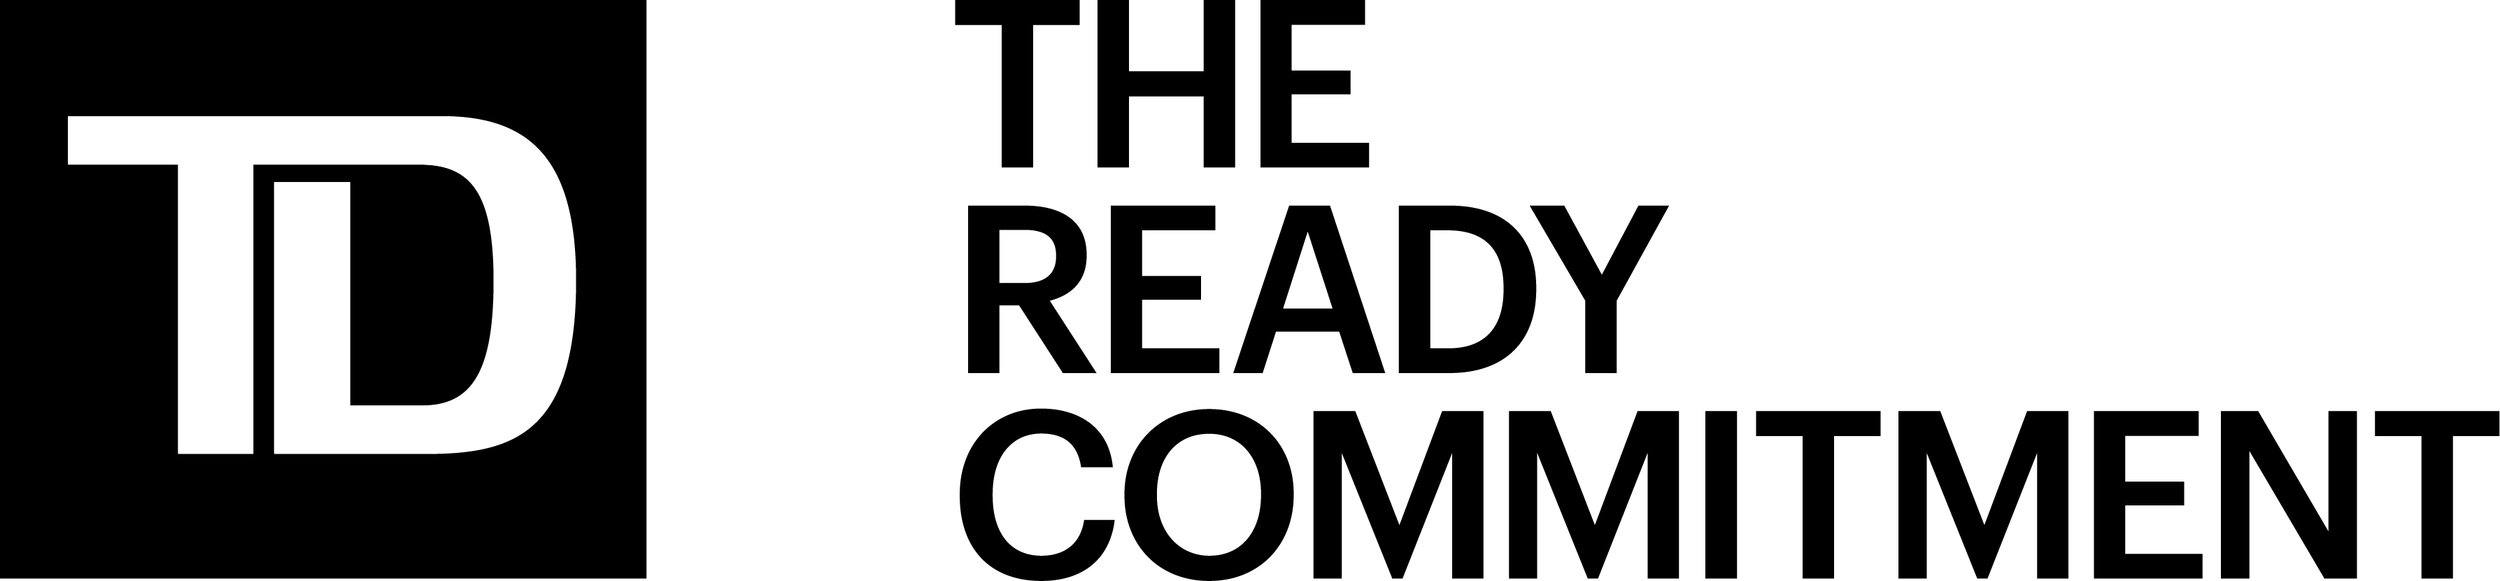 The Ready Commitment (B&W - EN).jpg